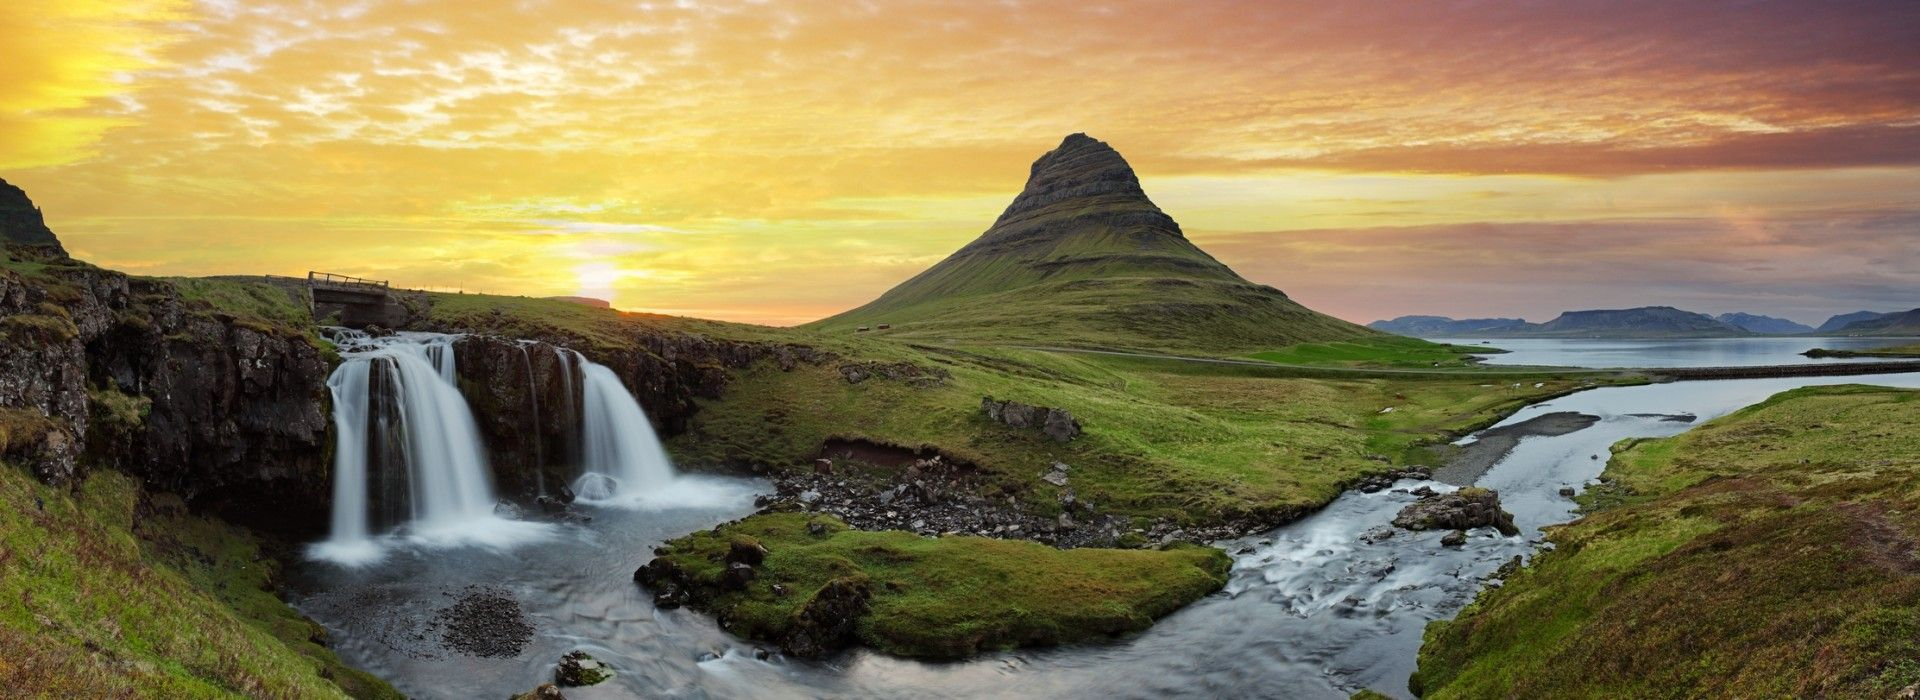 Beach, romance, getaways and relaxation Tours in Reykjavik